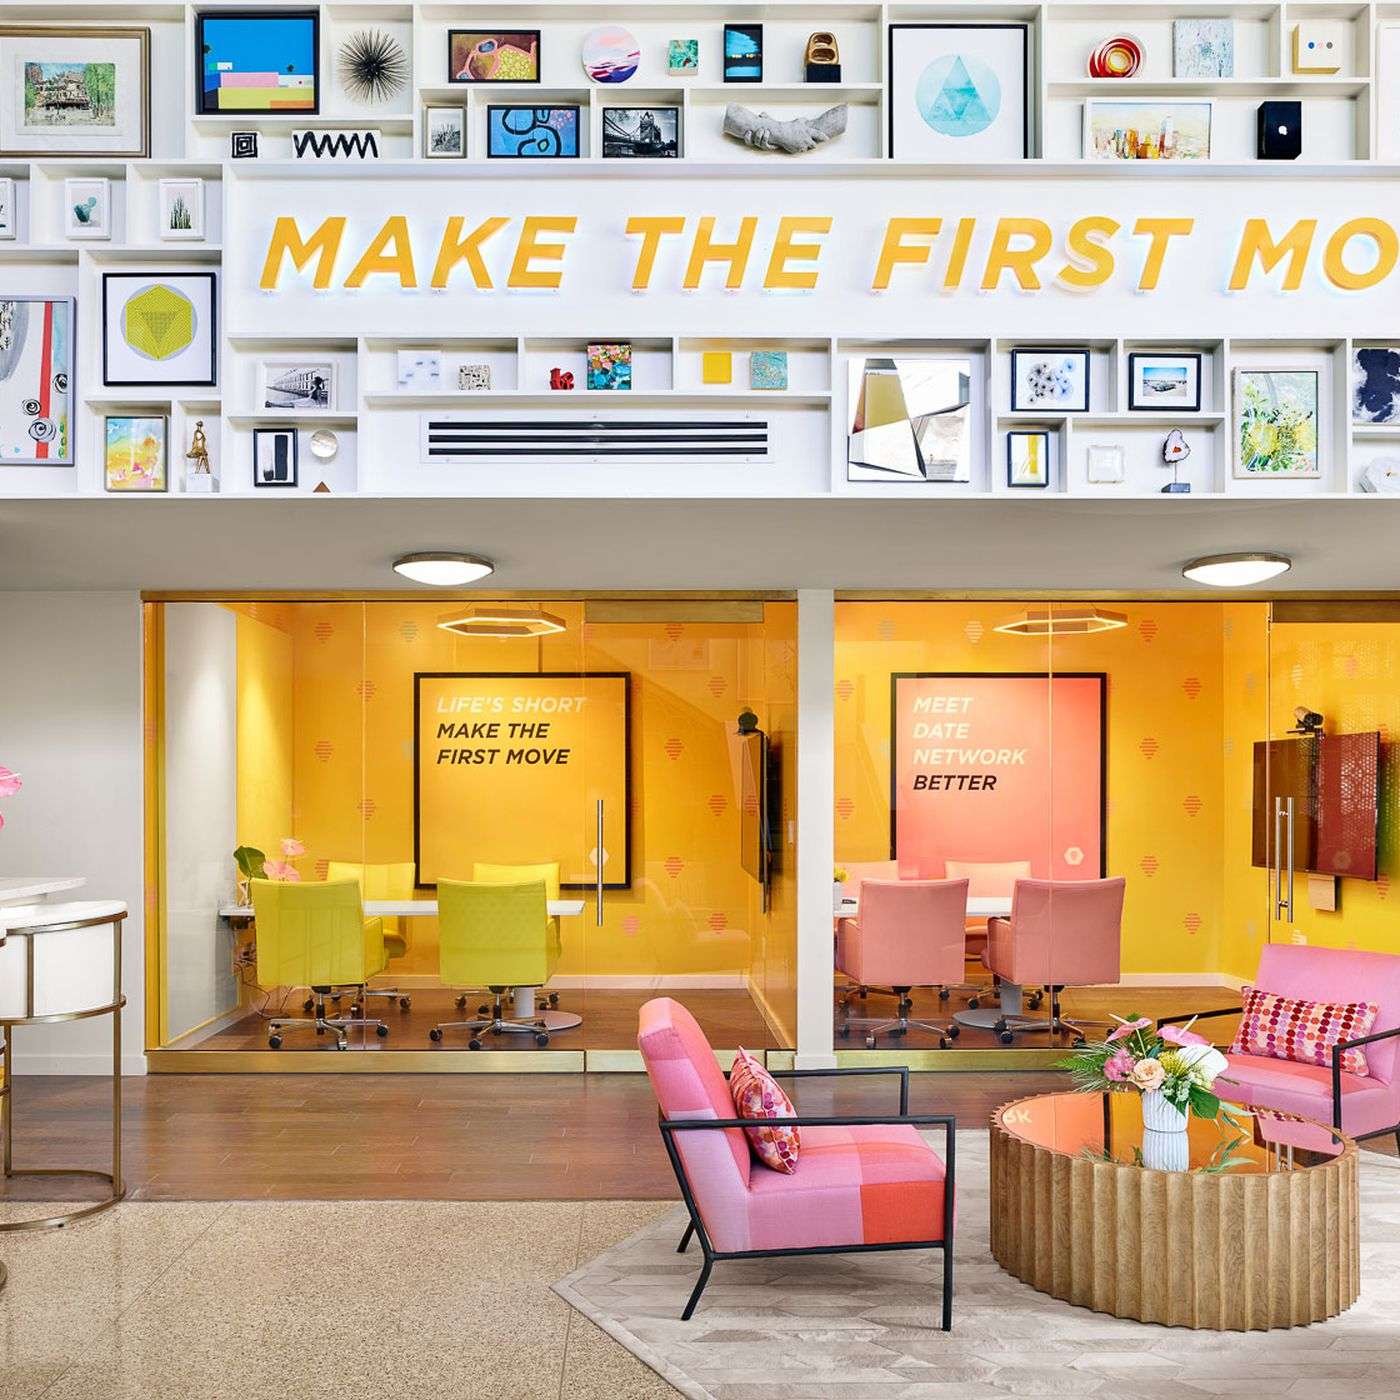 Bumble dating app's new Austin headquarters - Curbed Austin